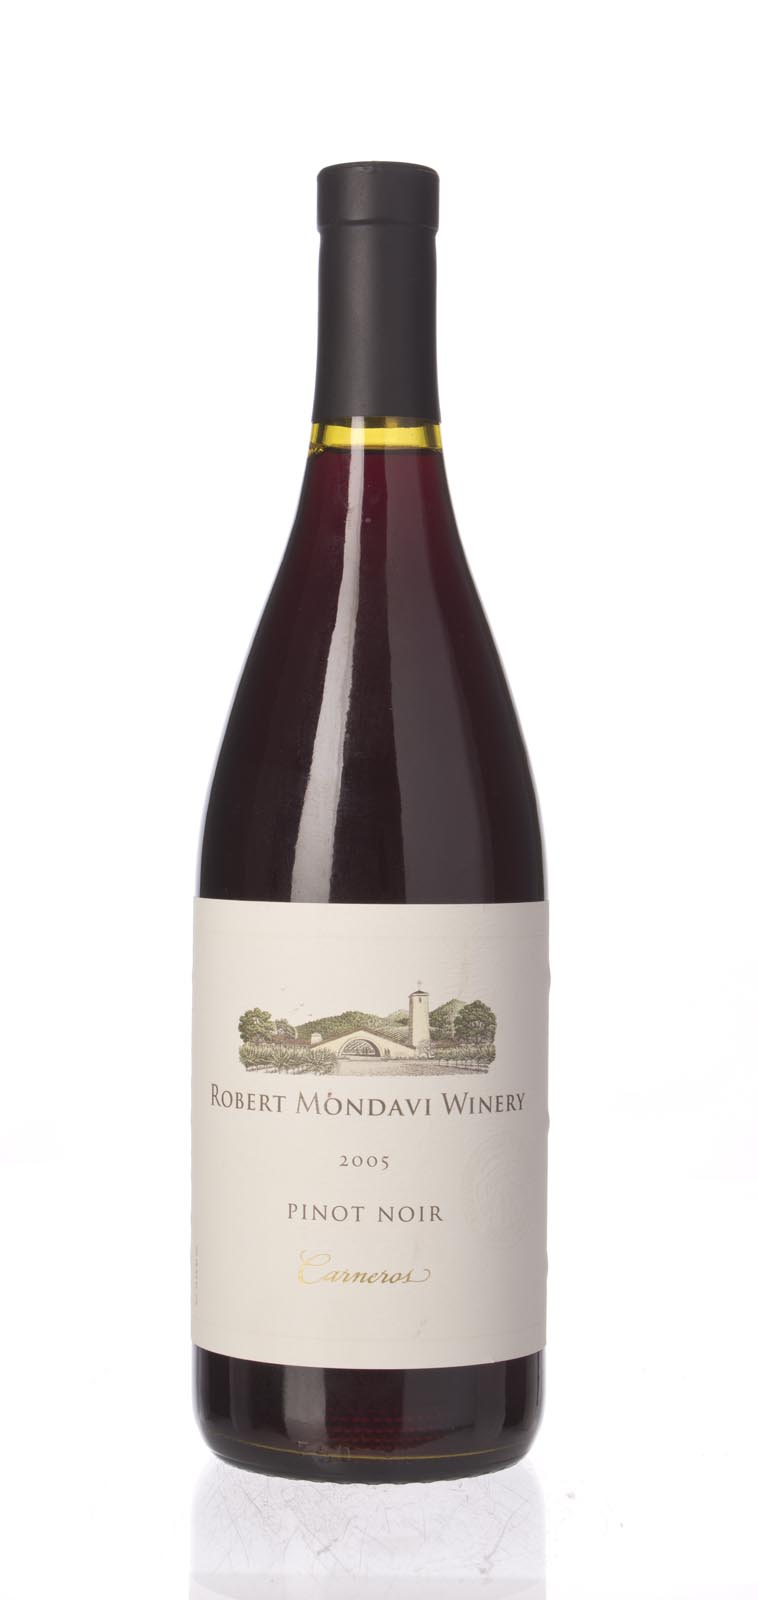 Robert Mondavi Pinot Noir Carneros 2005, 750mL (ST90) from The BPW - Merchants of rare and fine wines.